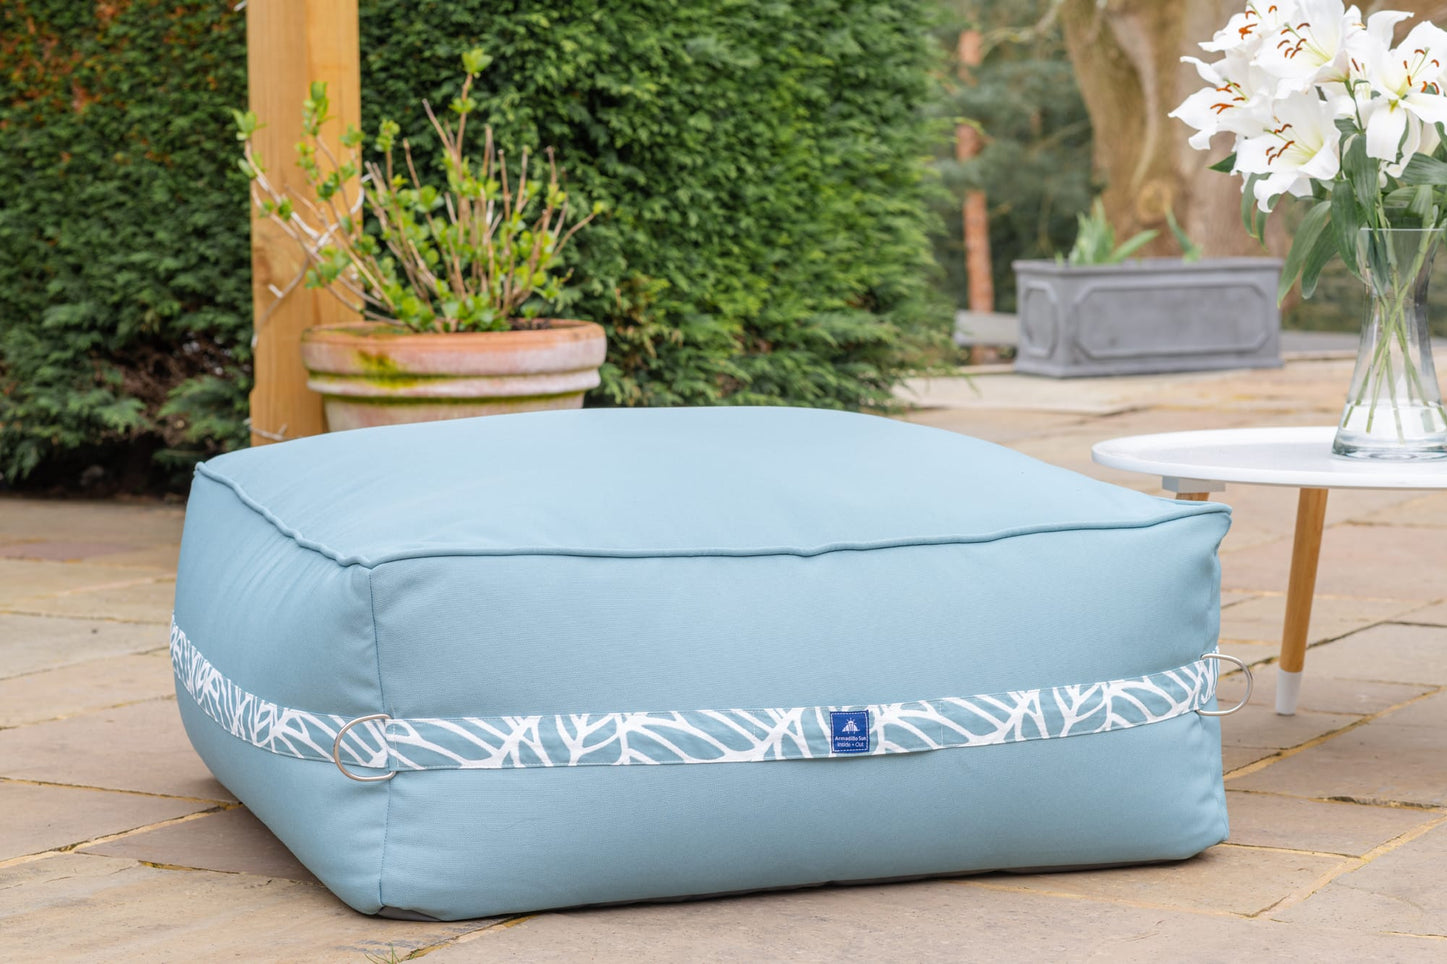 Monaco modular Bean Bag Ottaman in Ocean with Palm Patterned Straps Monaco armadillosun